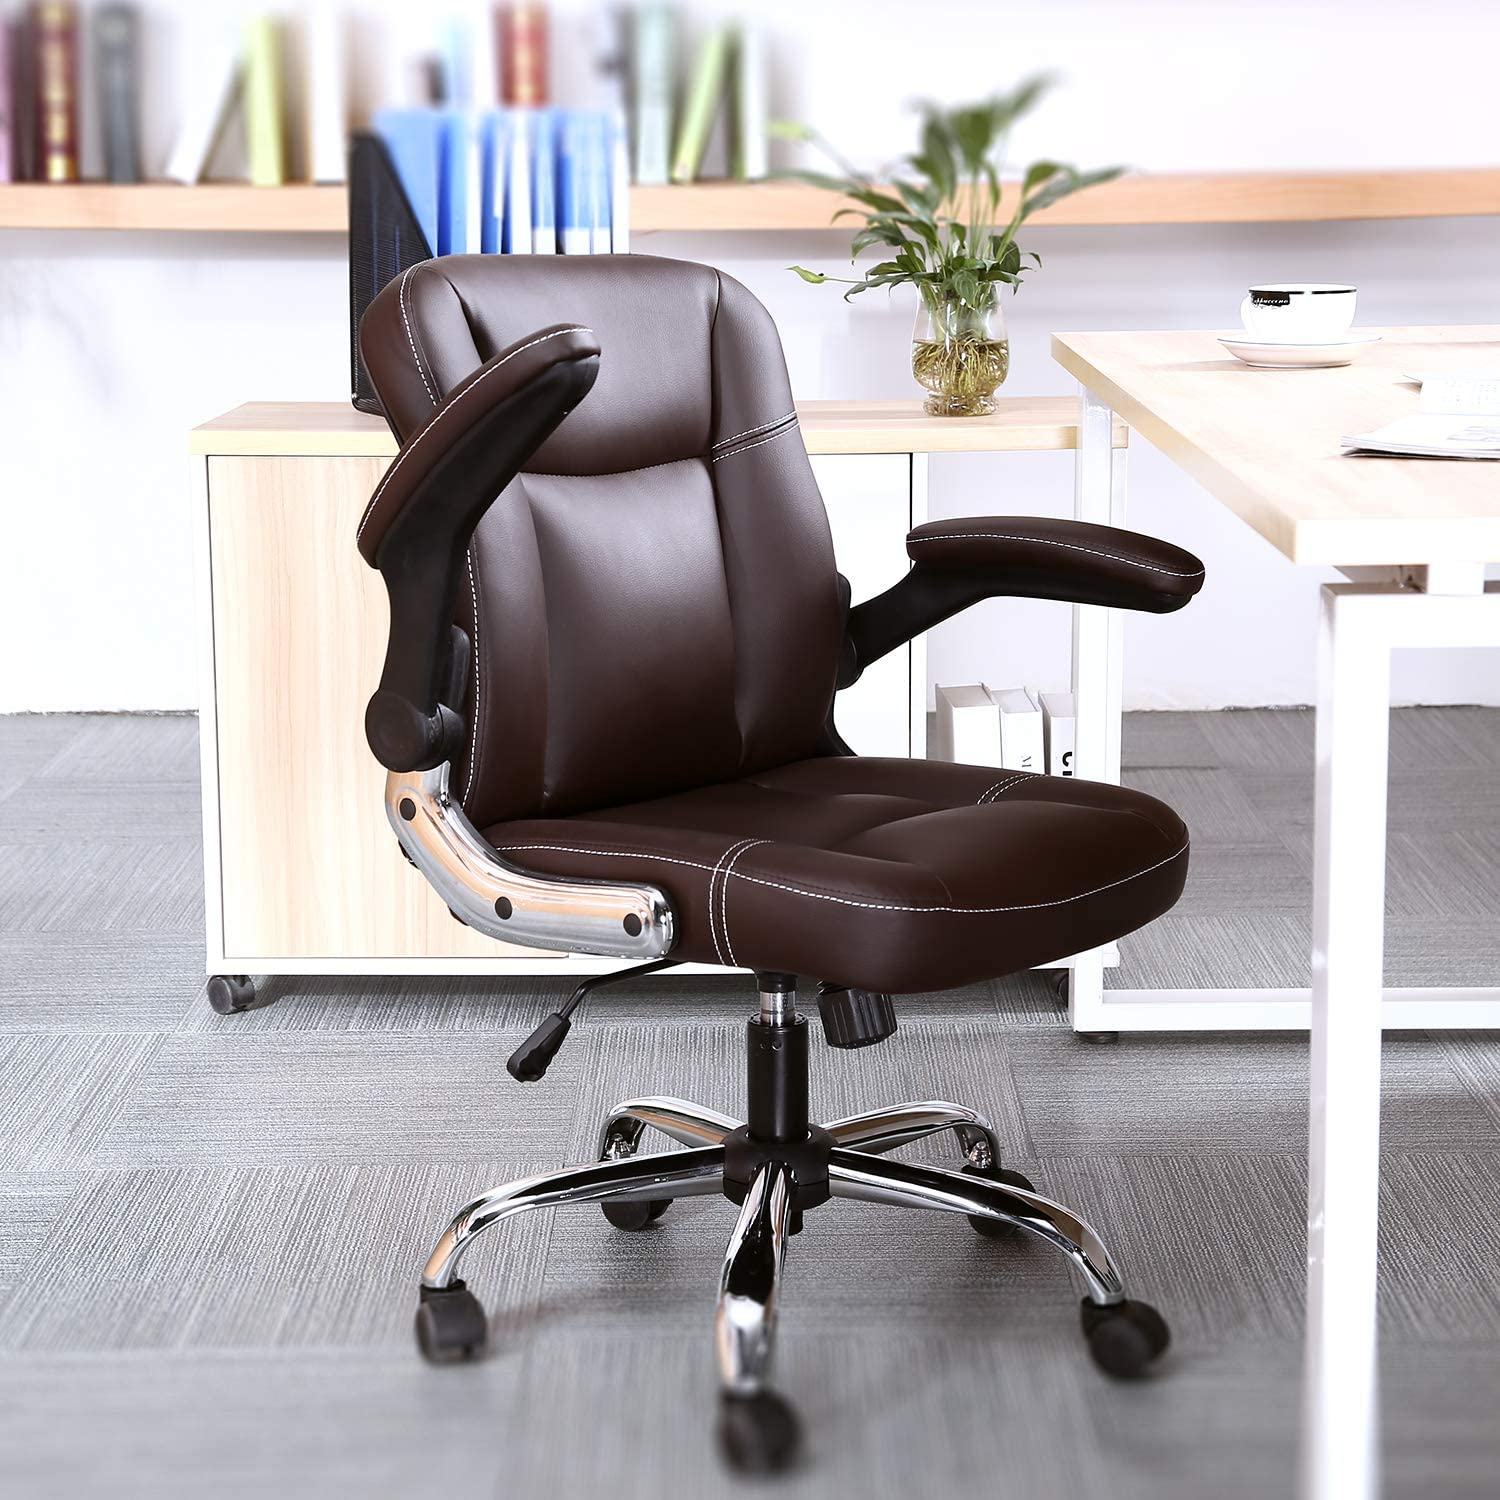 Myka s Ergonomic Leather Executive Office Chair High Back Computer Chair with Upholstered Armrest Brown